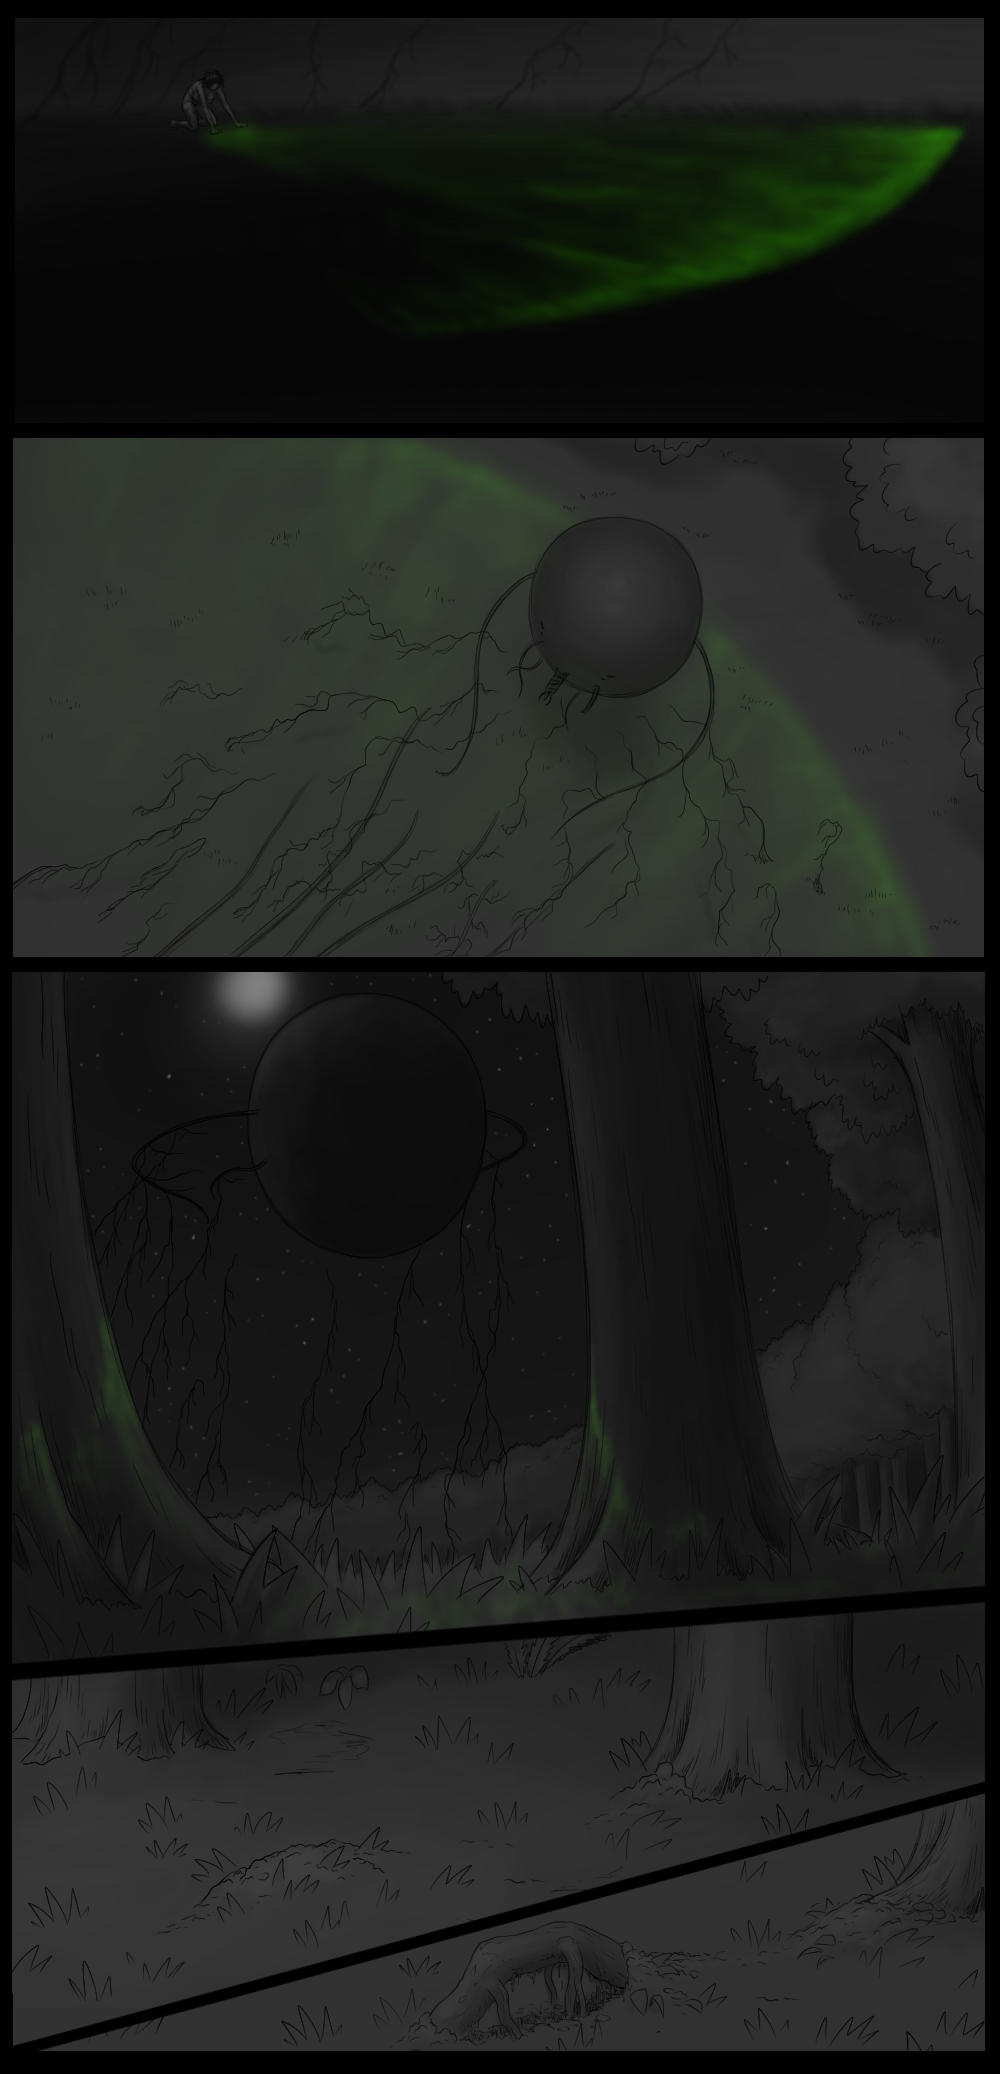 Page 82 - Battle against Glowslimer (Part 29)